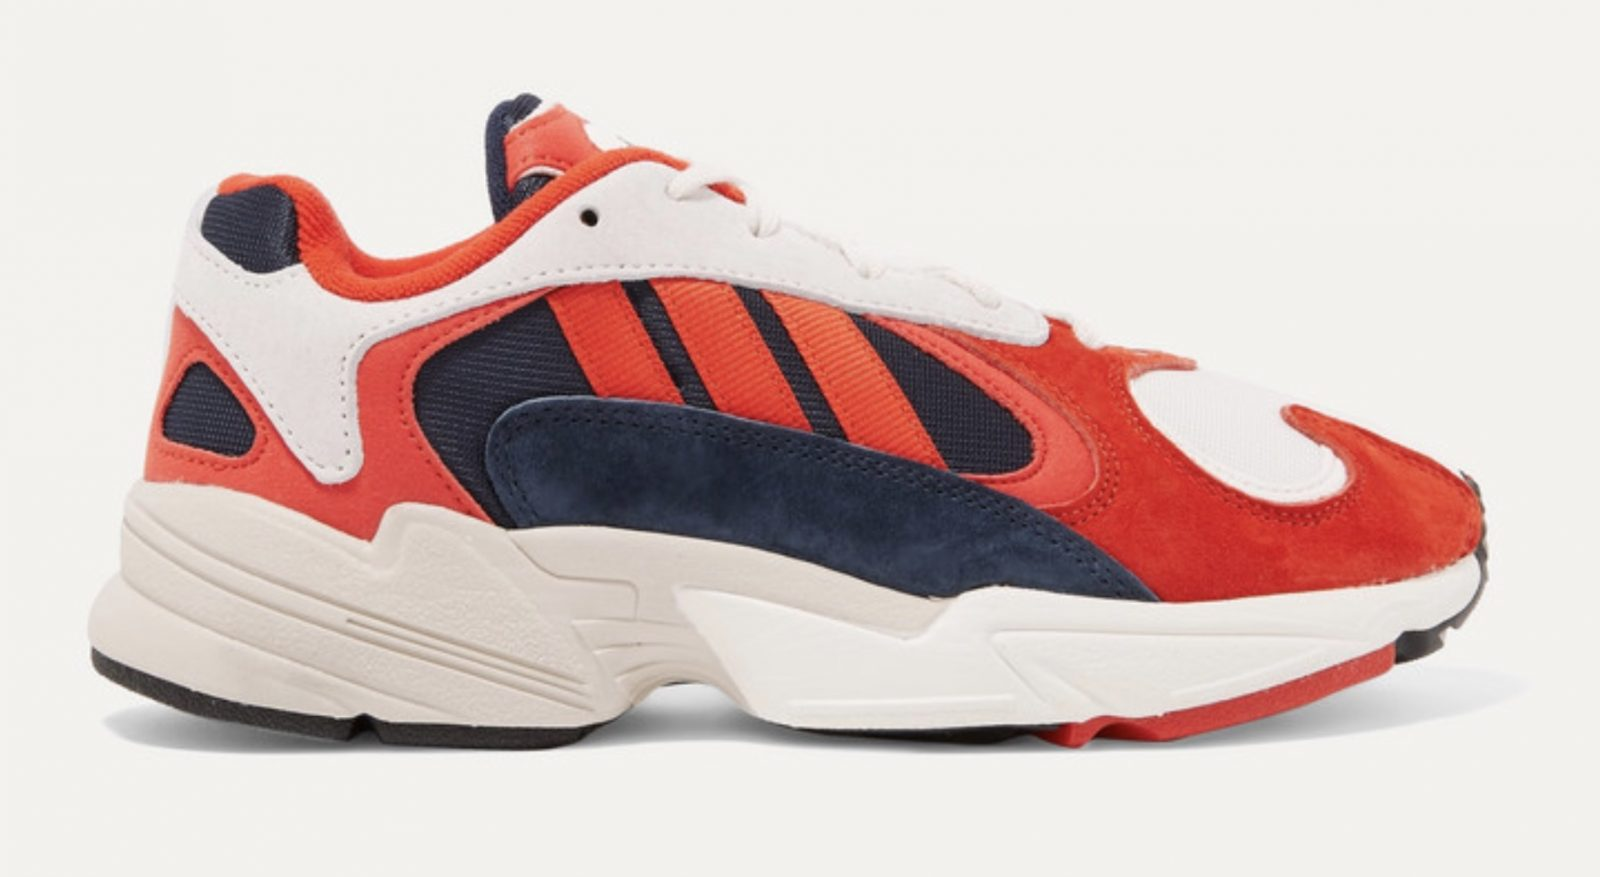 adidas Yung 1 OG Red Navy